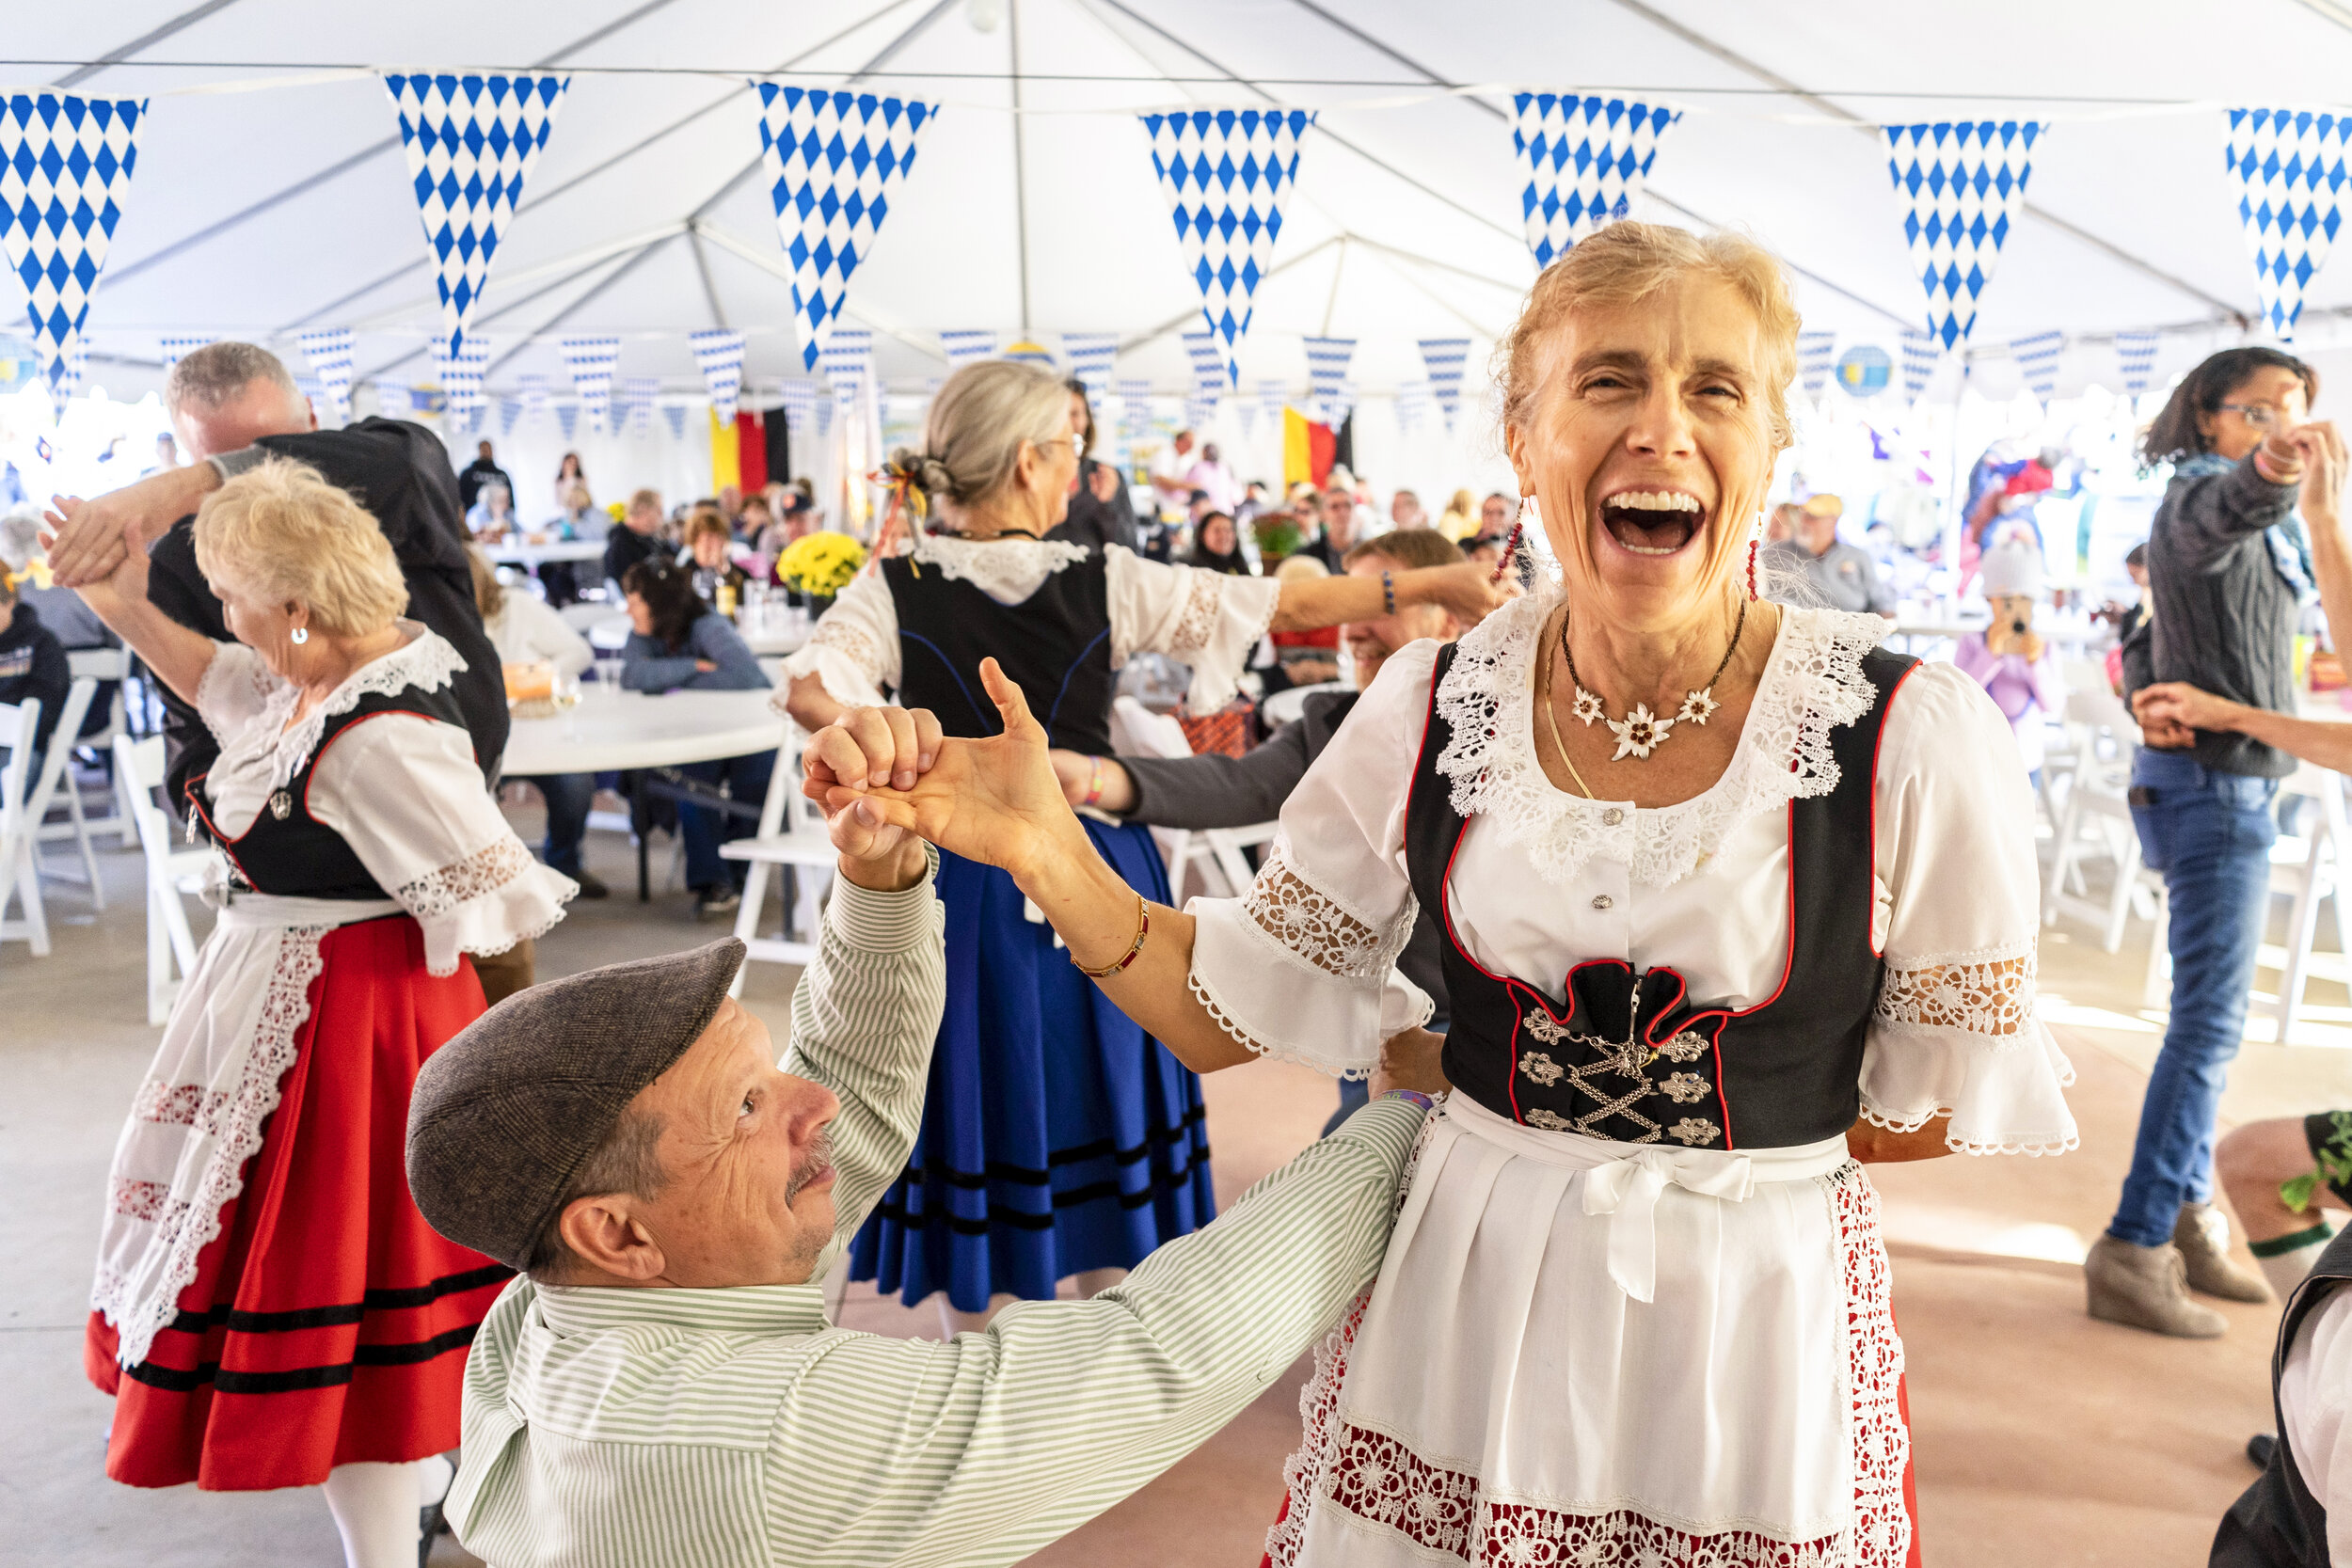 The Enzian Bavarian Band & Dancers teach crowd members traditional German styles of dance at the Oktoberfest celebration in Alexandria Bay.